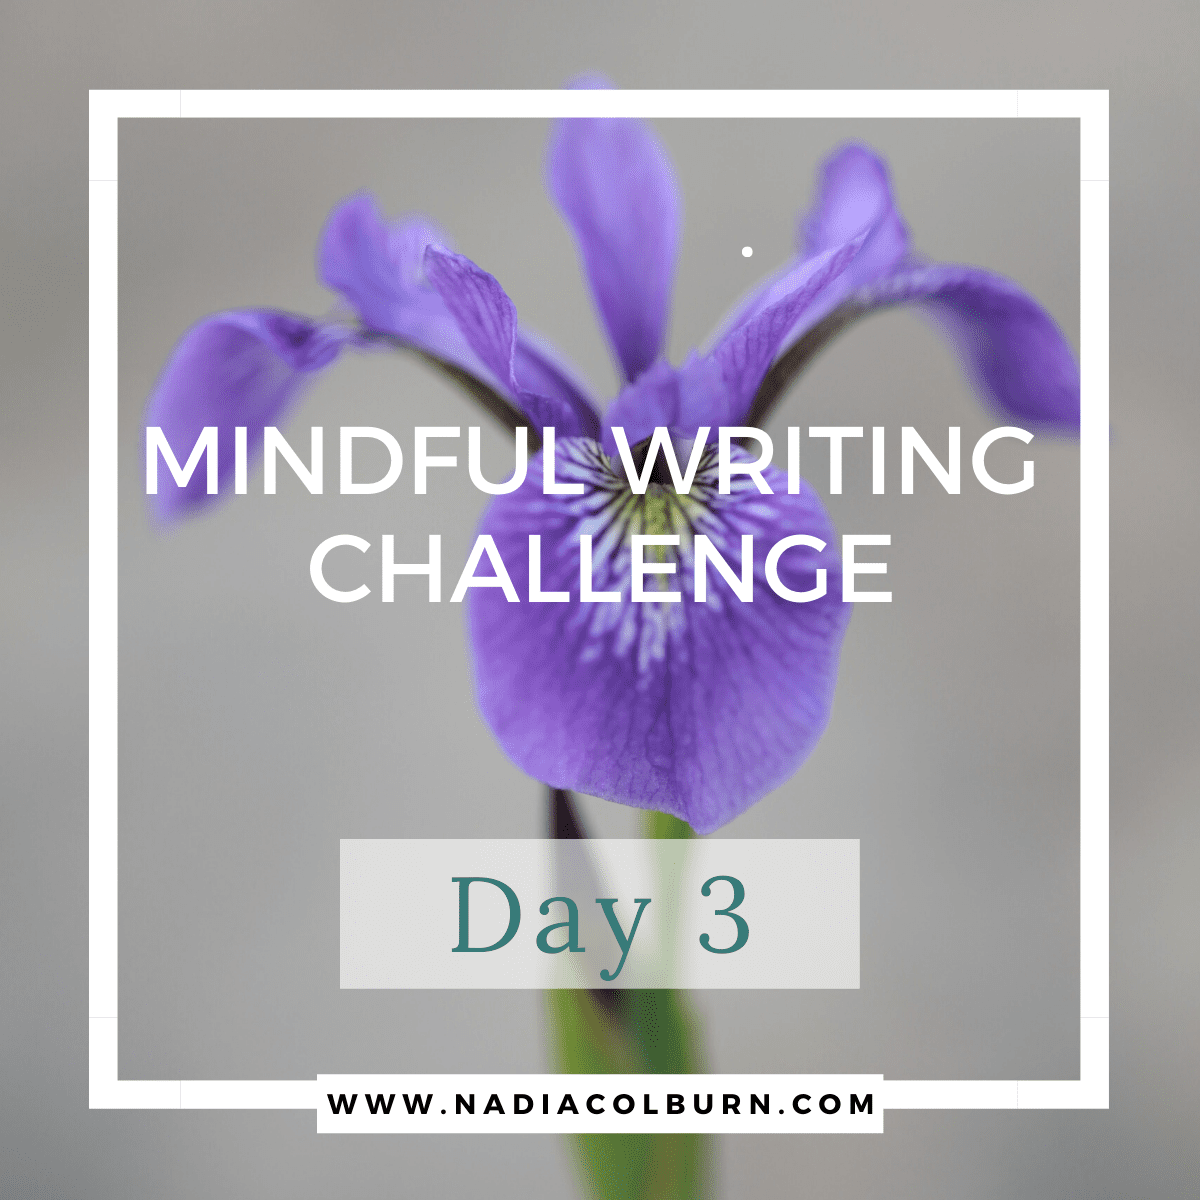 Mindful Writing Challenge Day 3 7